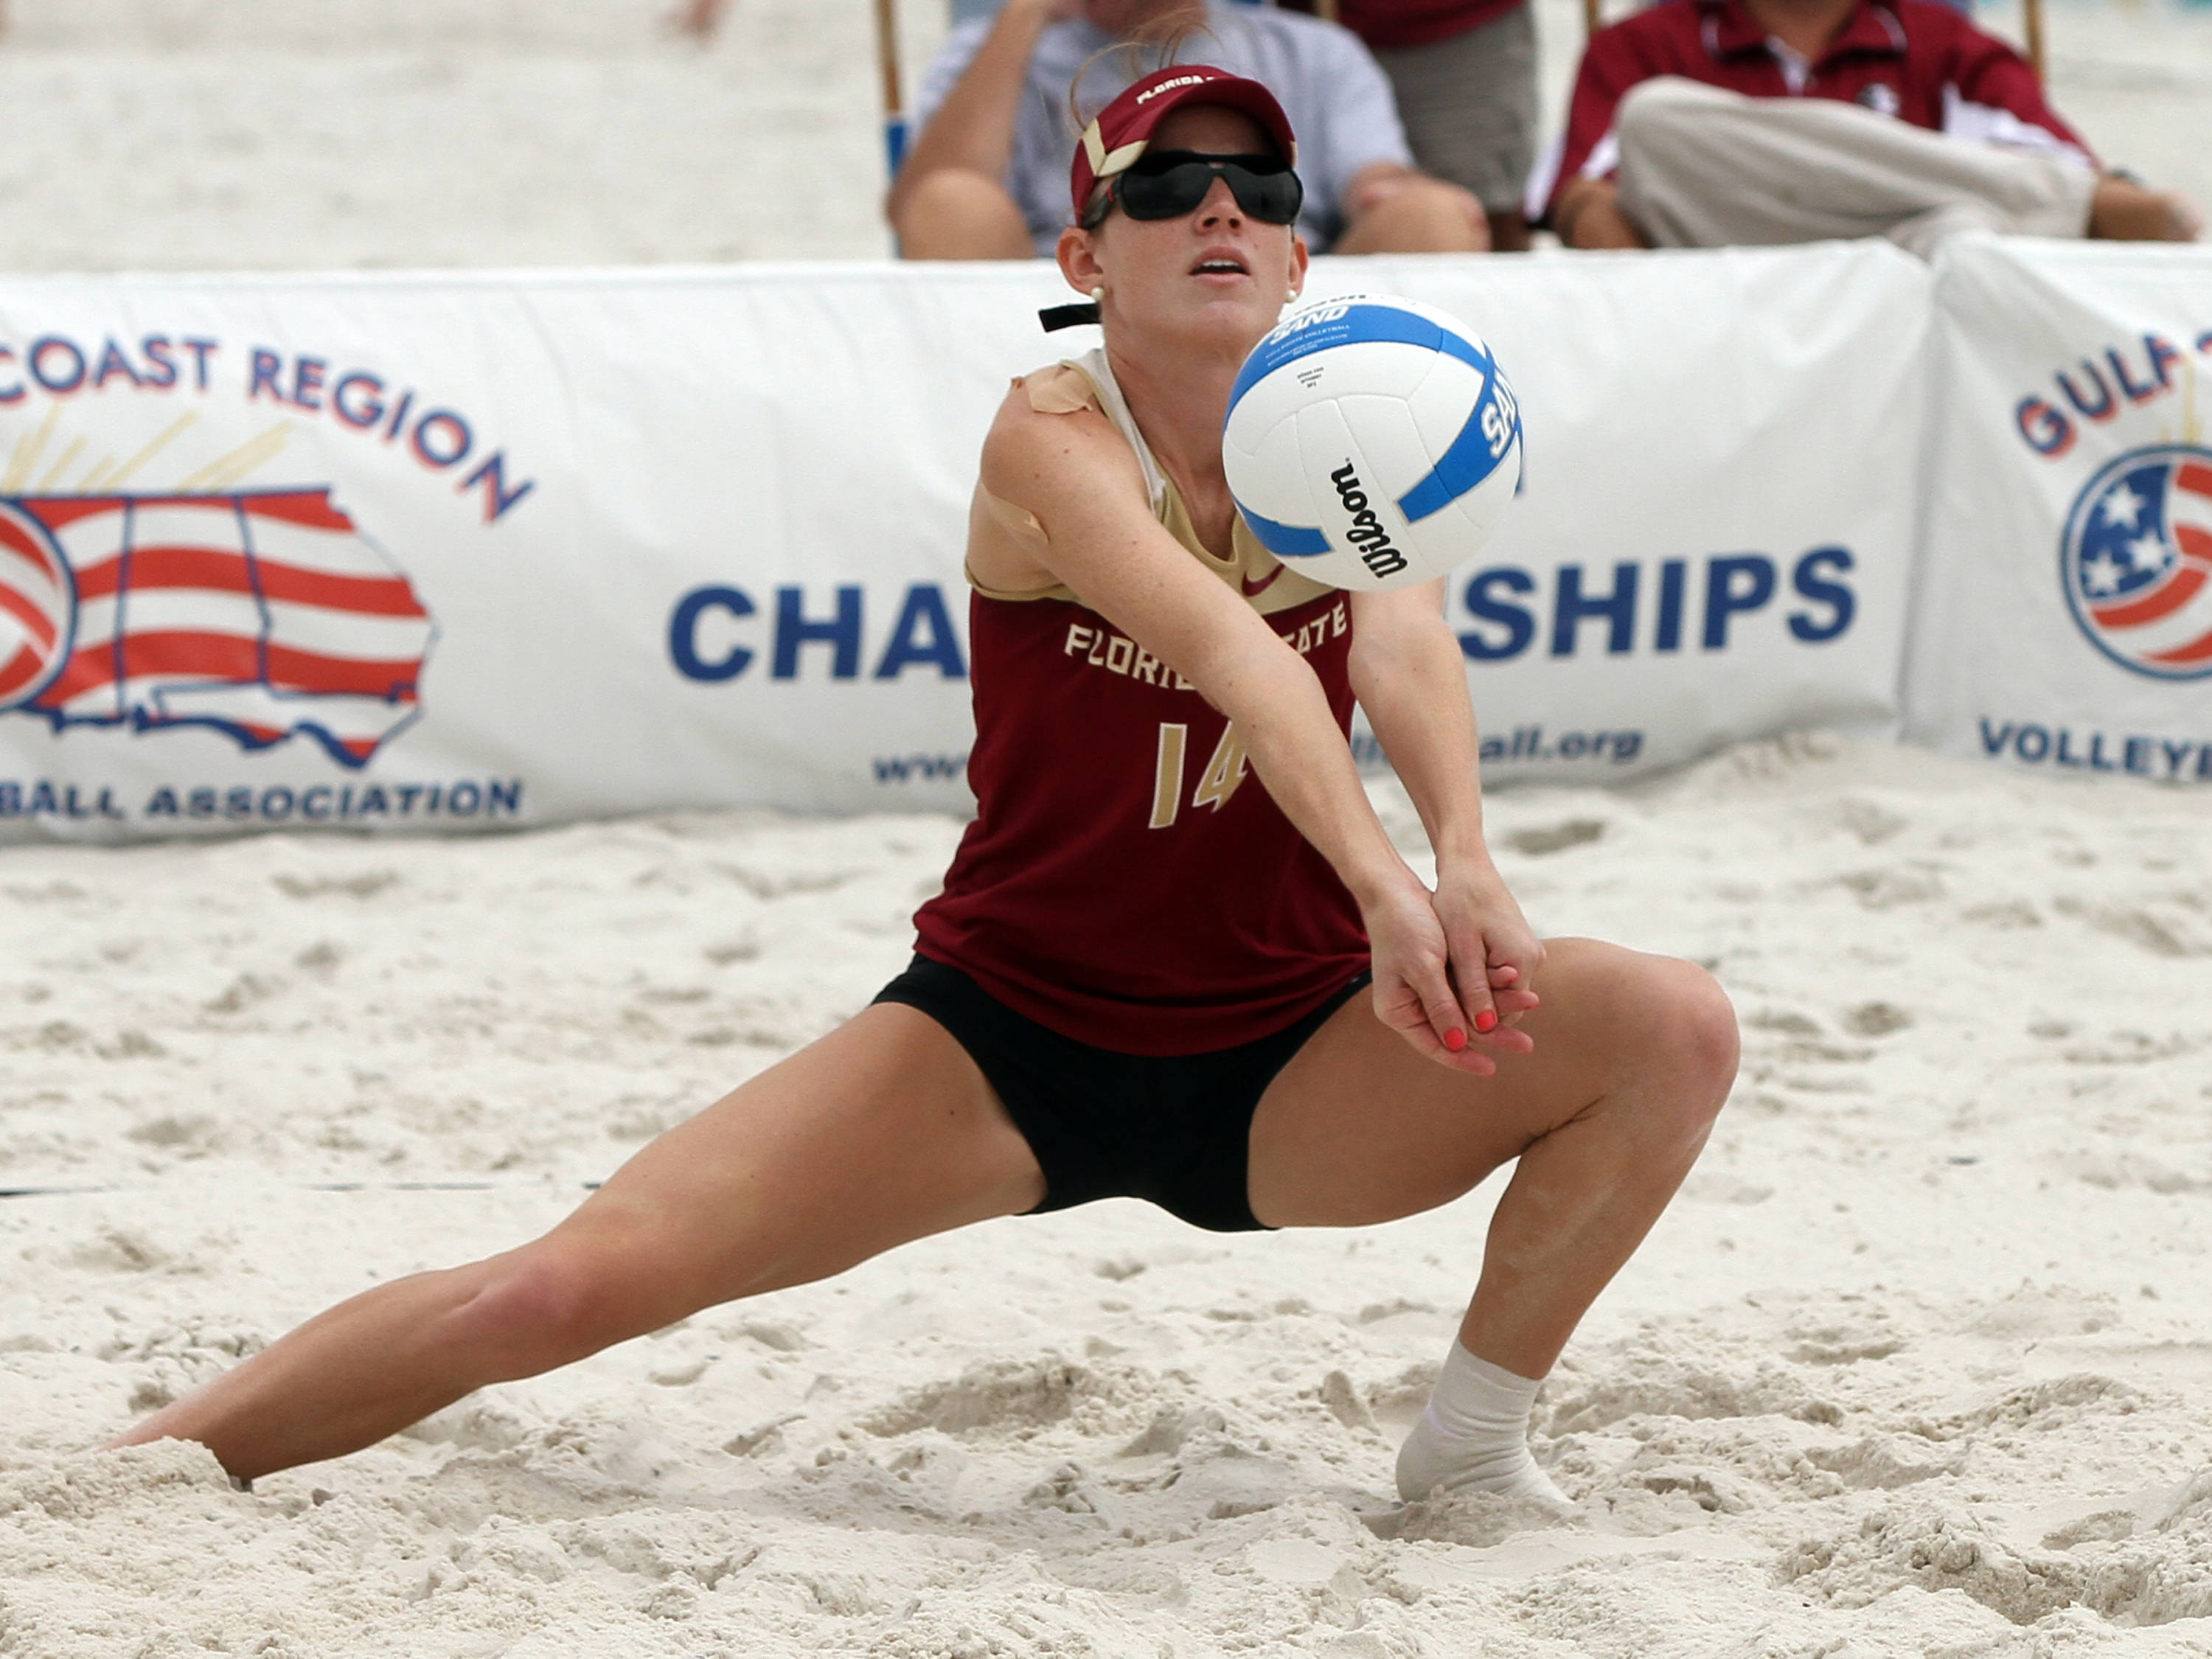 Mallory Kiley (14), AVCA Collegiate Sand Volleyball National Championships,  Gulf Shores, Alabama,05/03/13 . (Photo by Steve Musco)